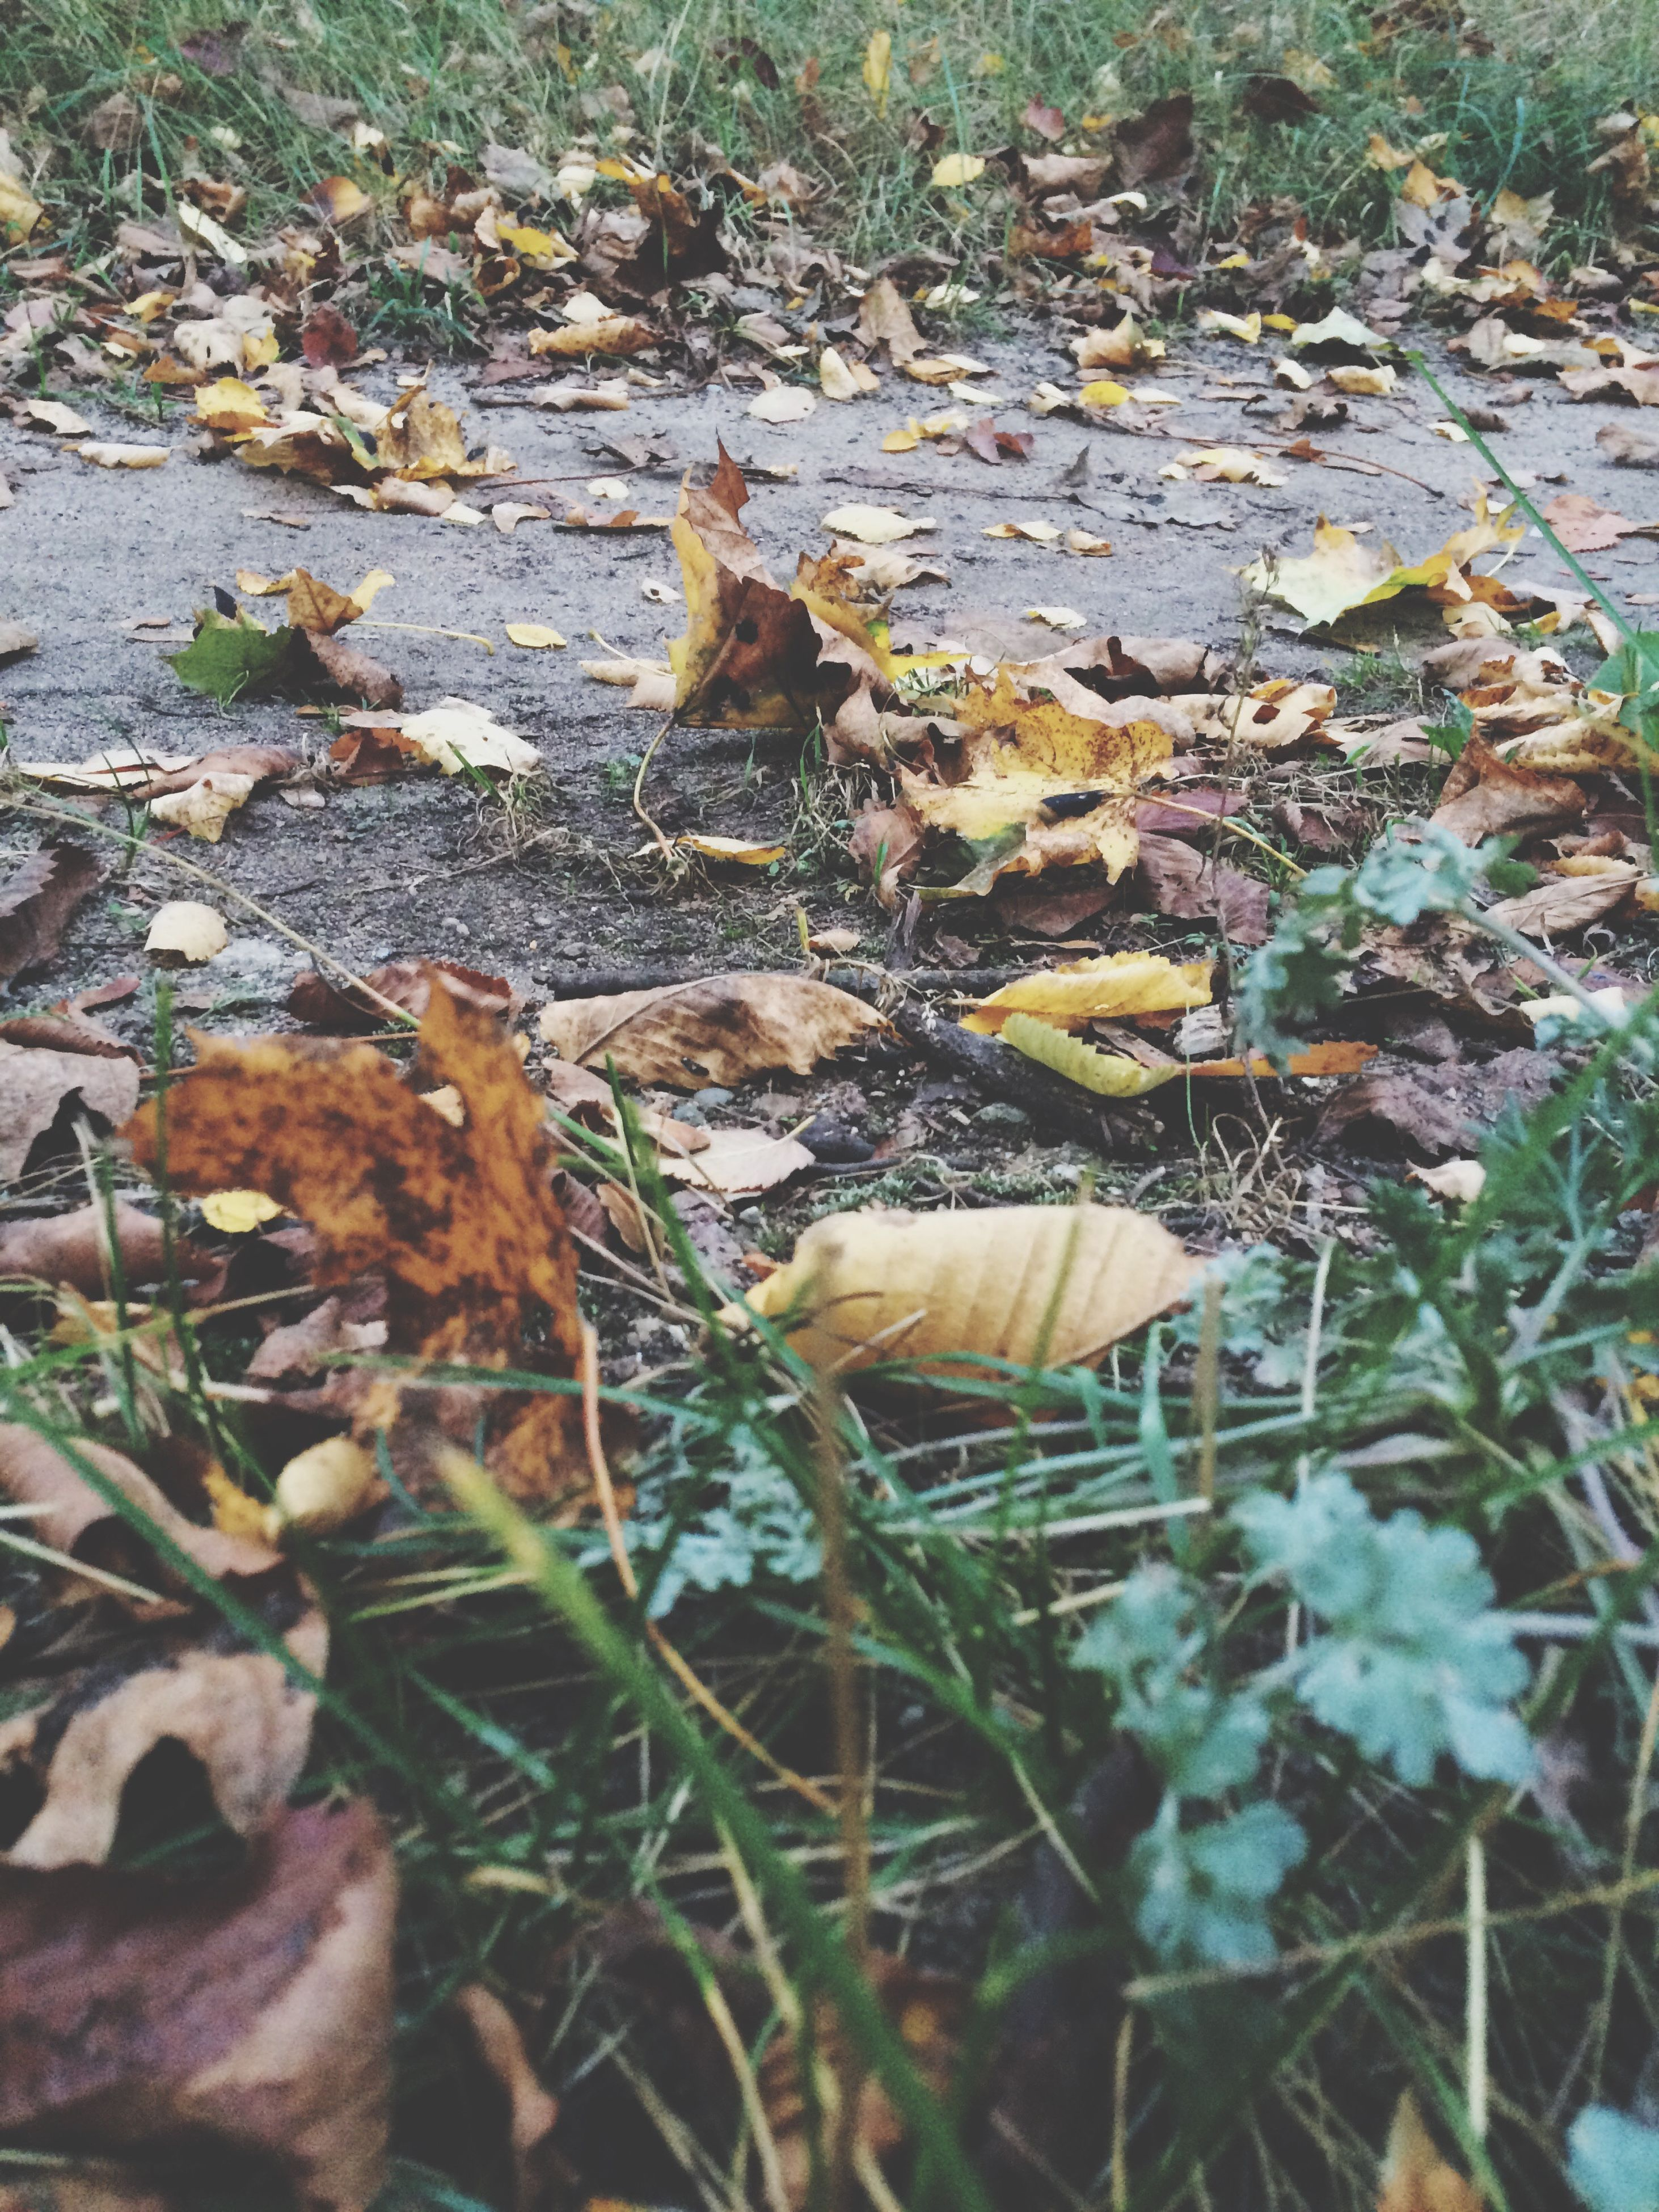 leaf, autumn, change, season, dry, fallen leaf, high angle view, leaves, field, nature, tranquility, fallen, natural condition, abundance, day, fragility, moss, non-urban scene, beauty in nature, outdoors, scenics, dried plant, land, messy, tranquil scene, contrasts